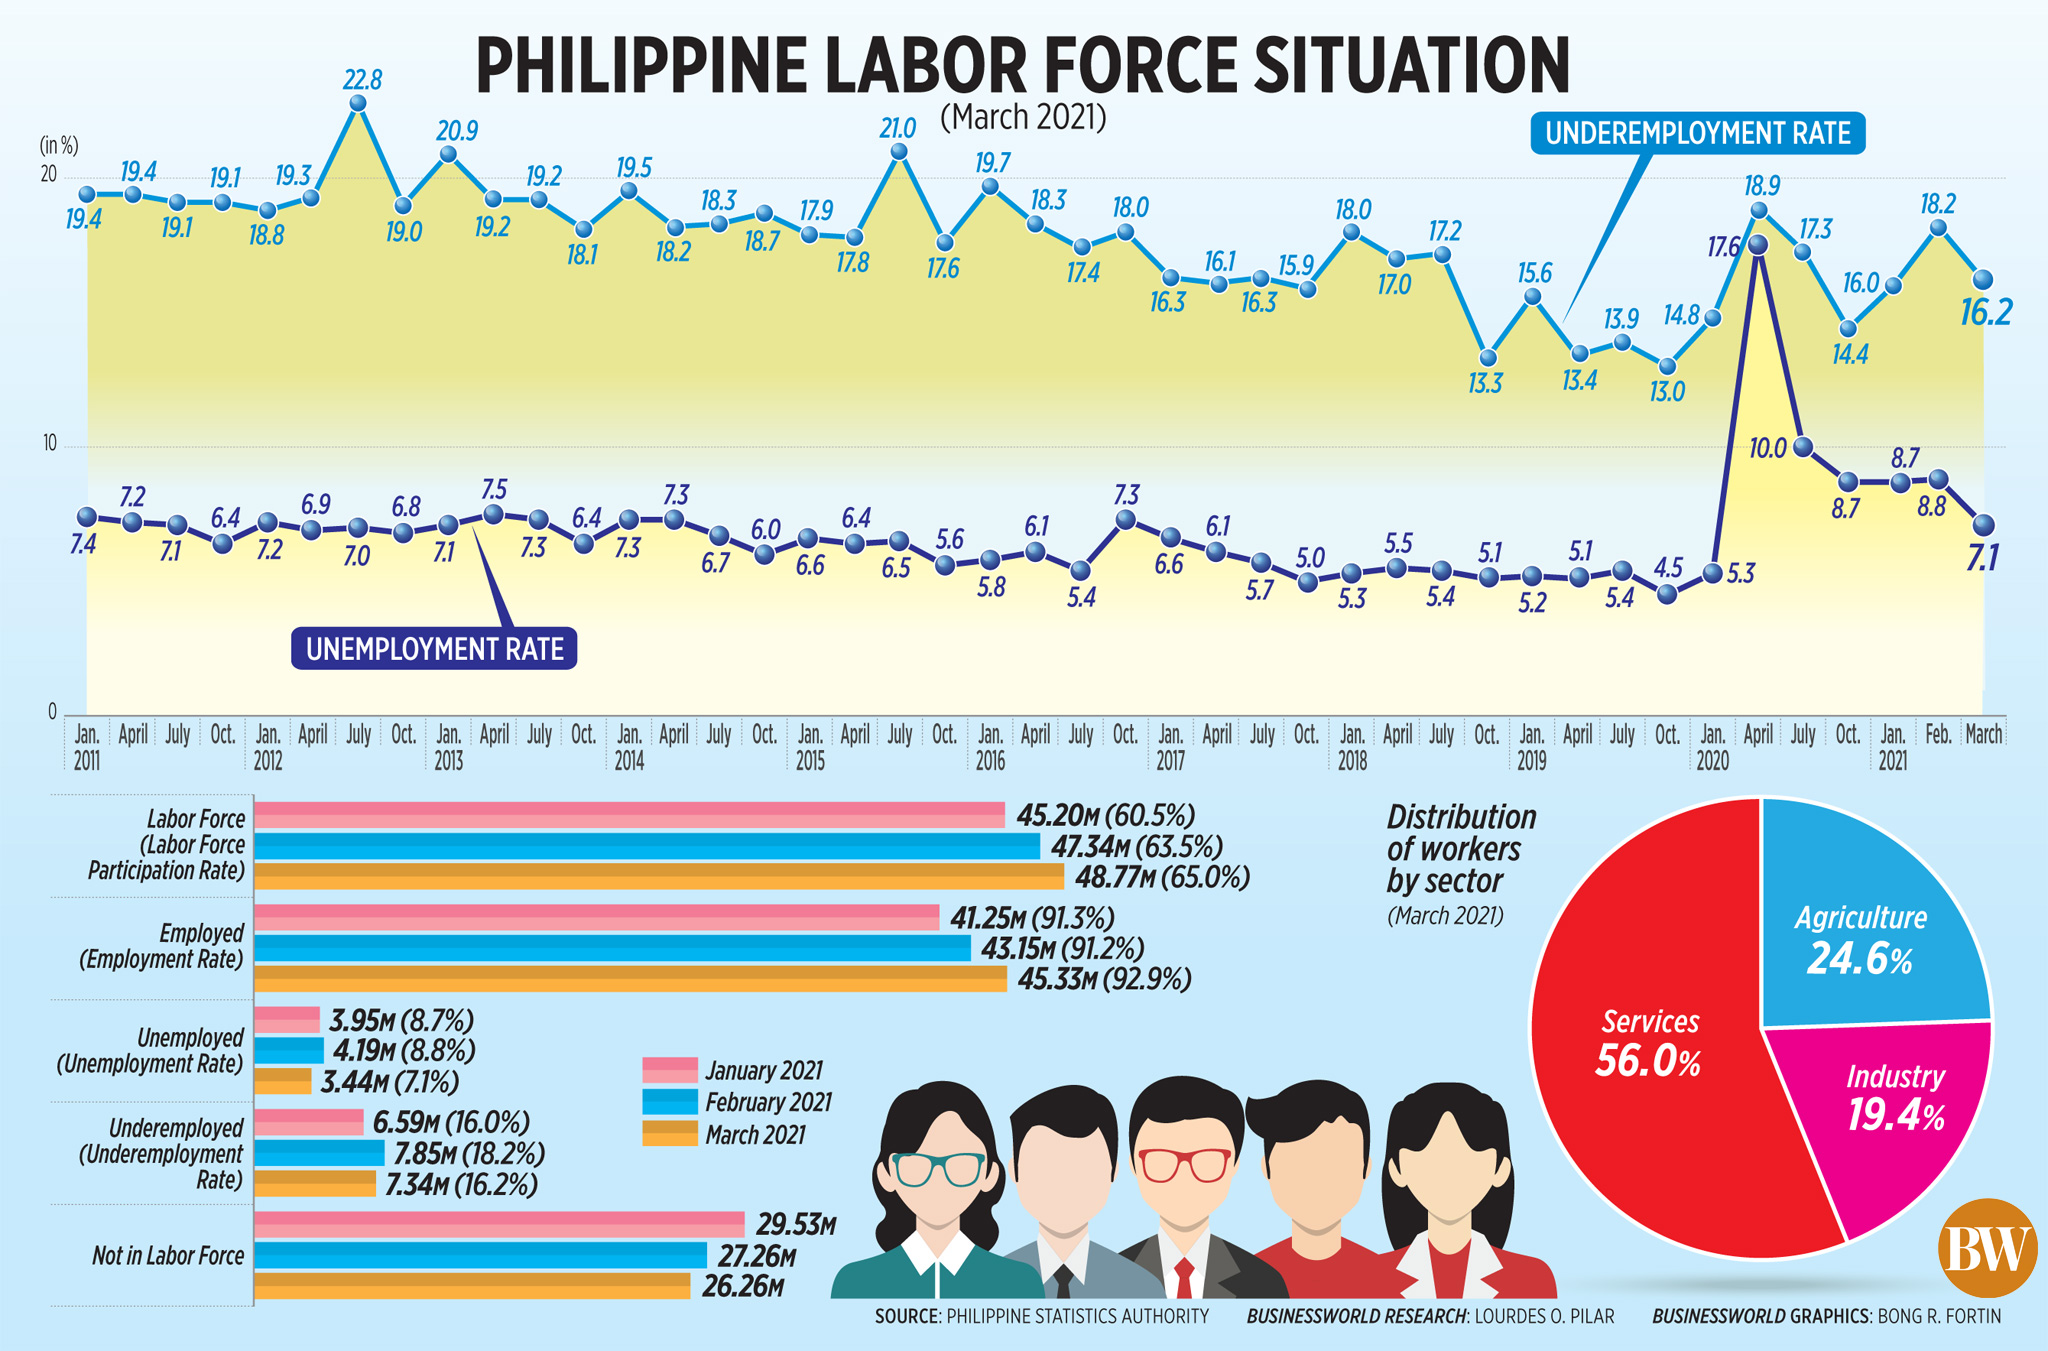 Philippine Labor Force Situation (March 2021)